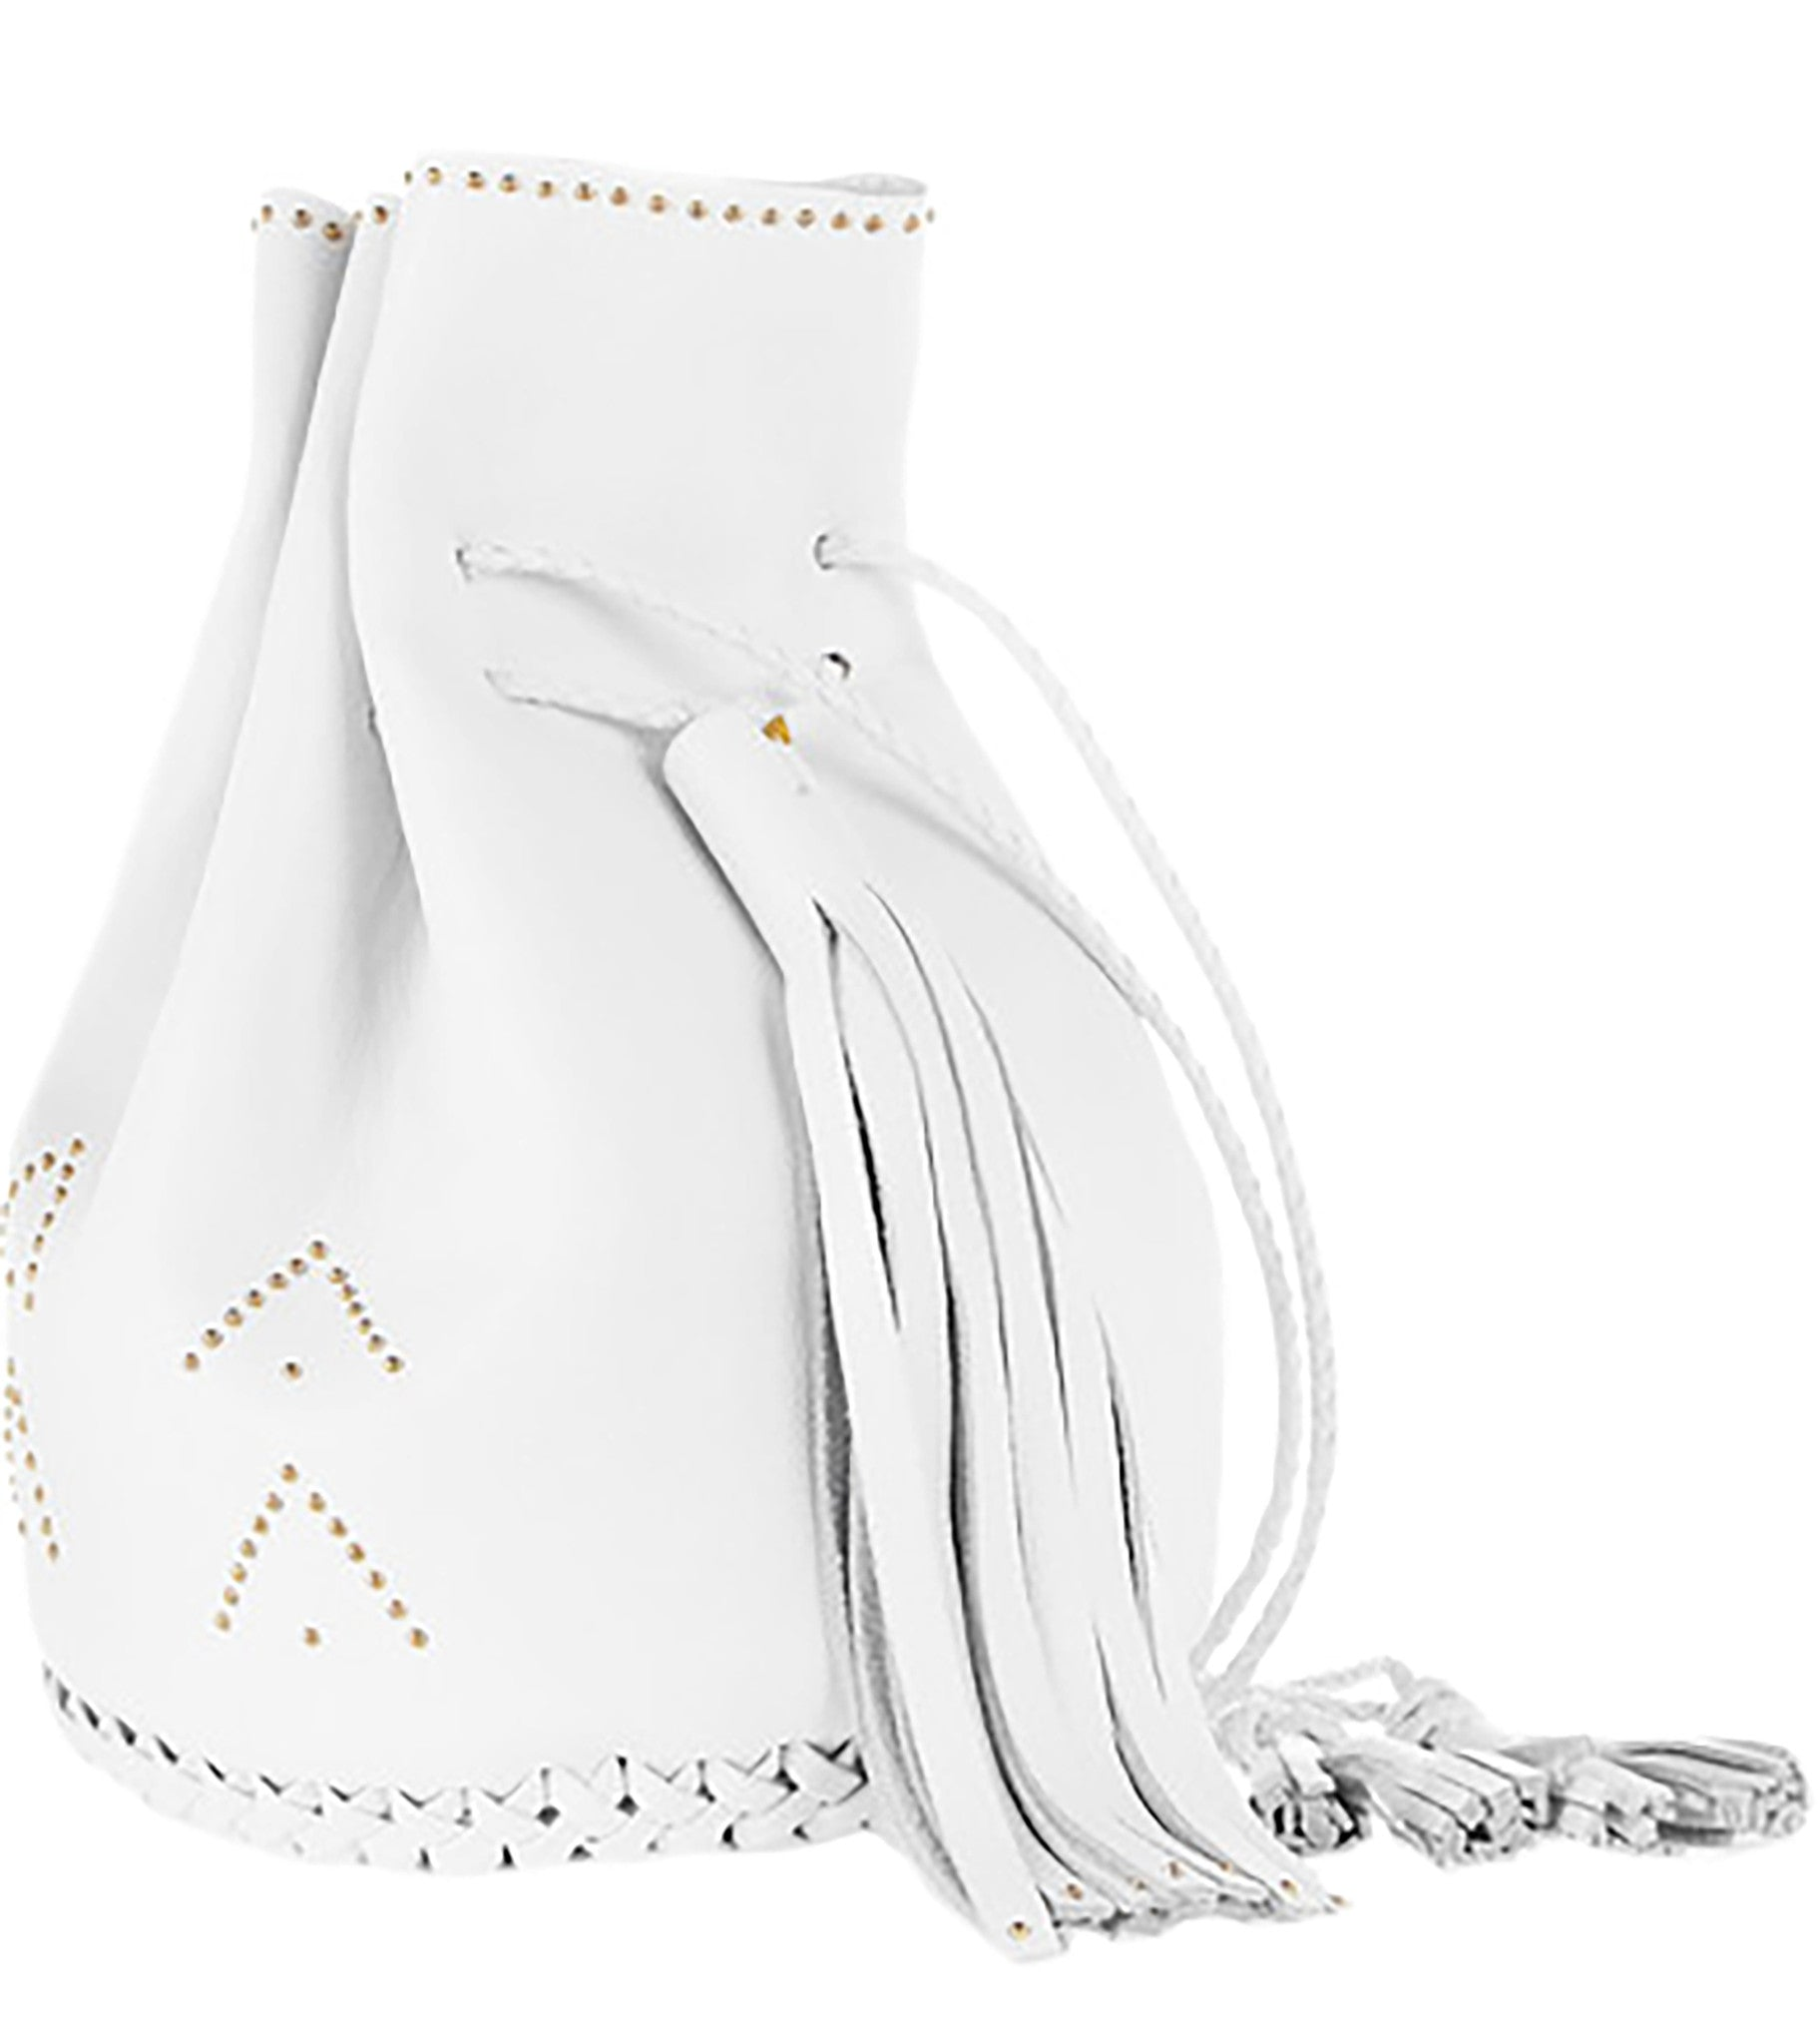 White Hand Studded Studs Stud Chevron Leather Bullet Bag Wendy Nichol Handbag Purse Designer Handmade in NYC New York City Bucket Bag Drawstring Pouch Large Fringe Tassel Net-a-porter